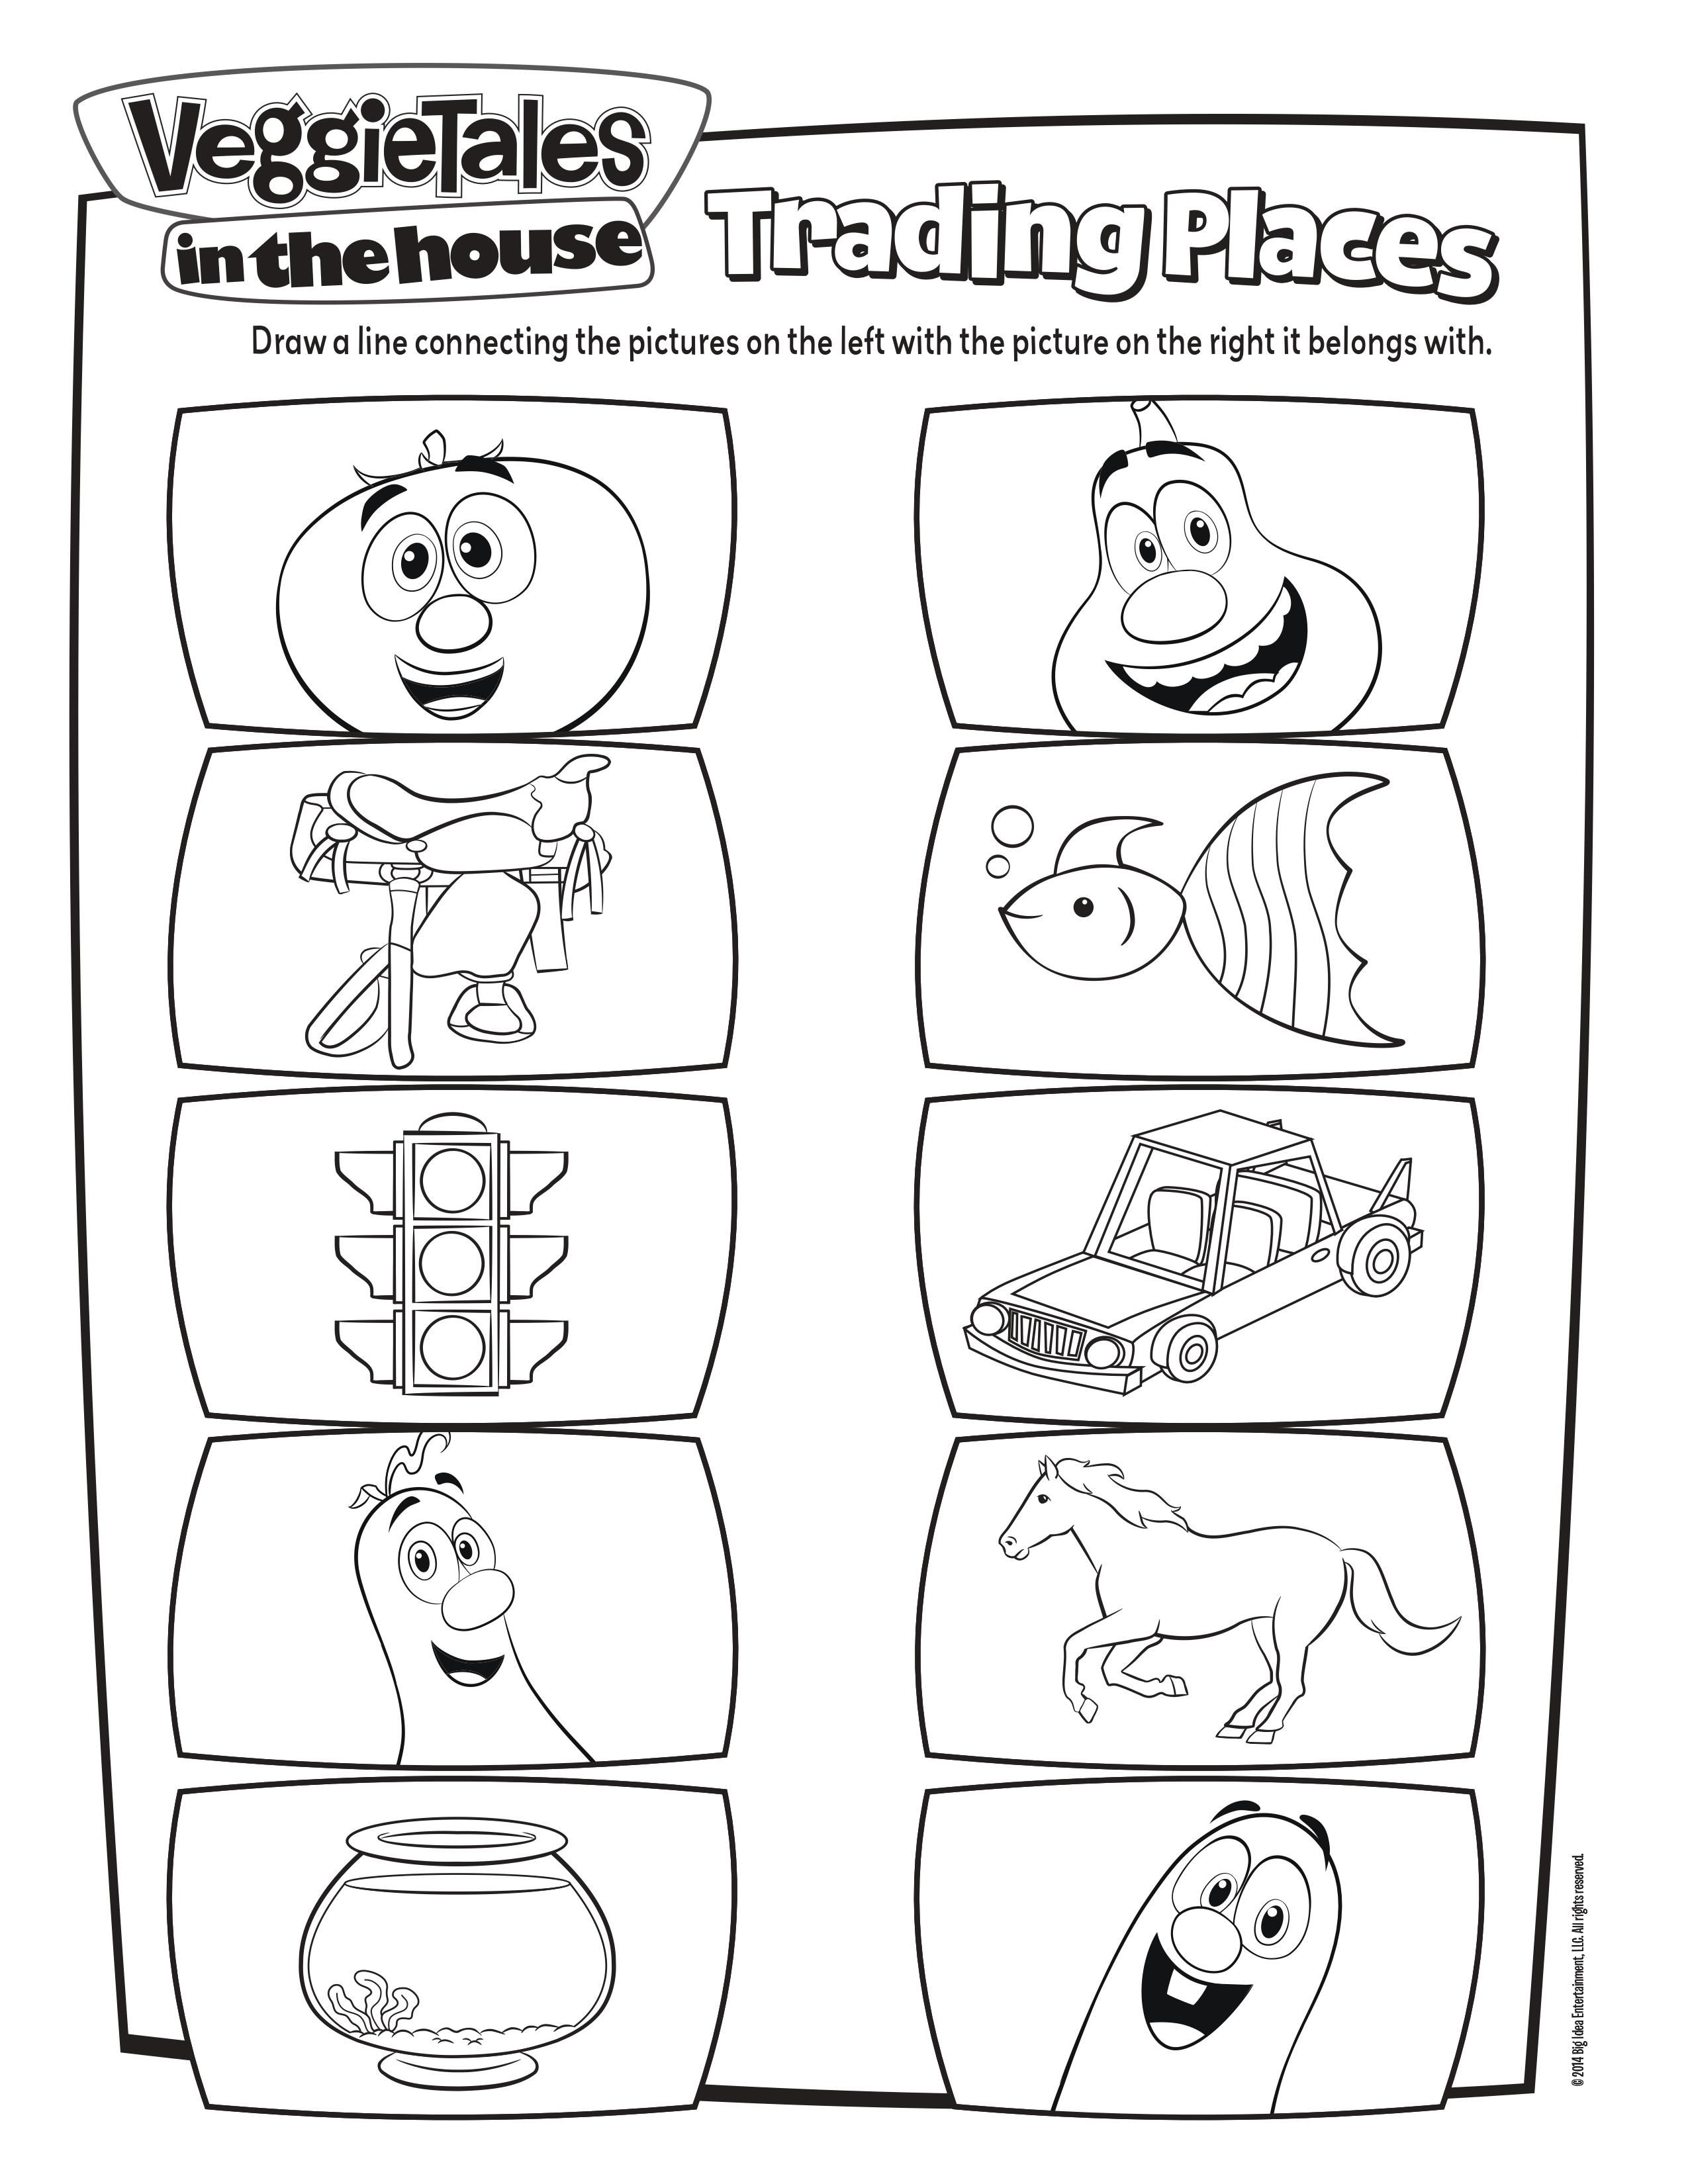 Veggie Tales Trading Places Activity Page